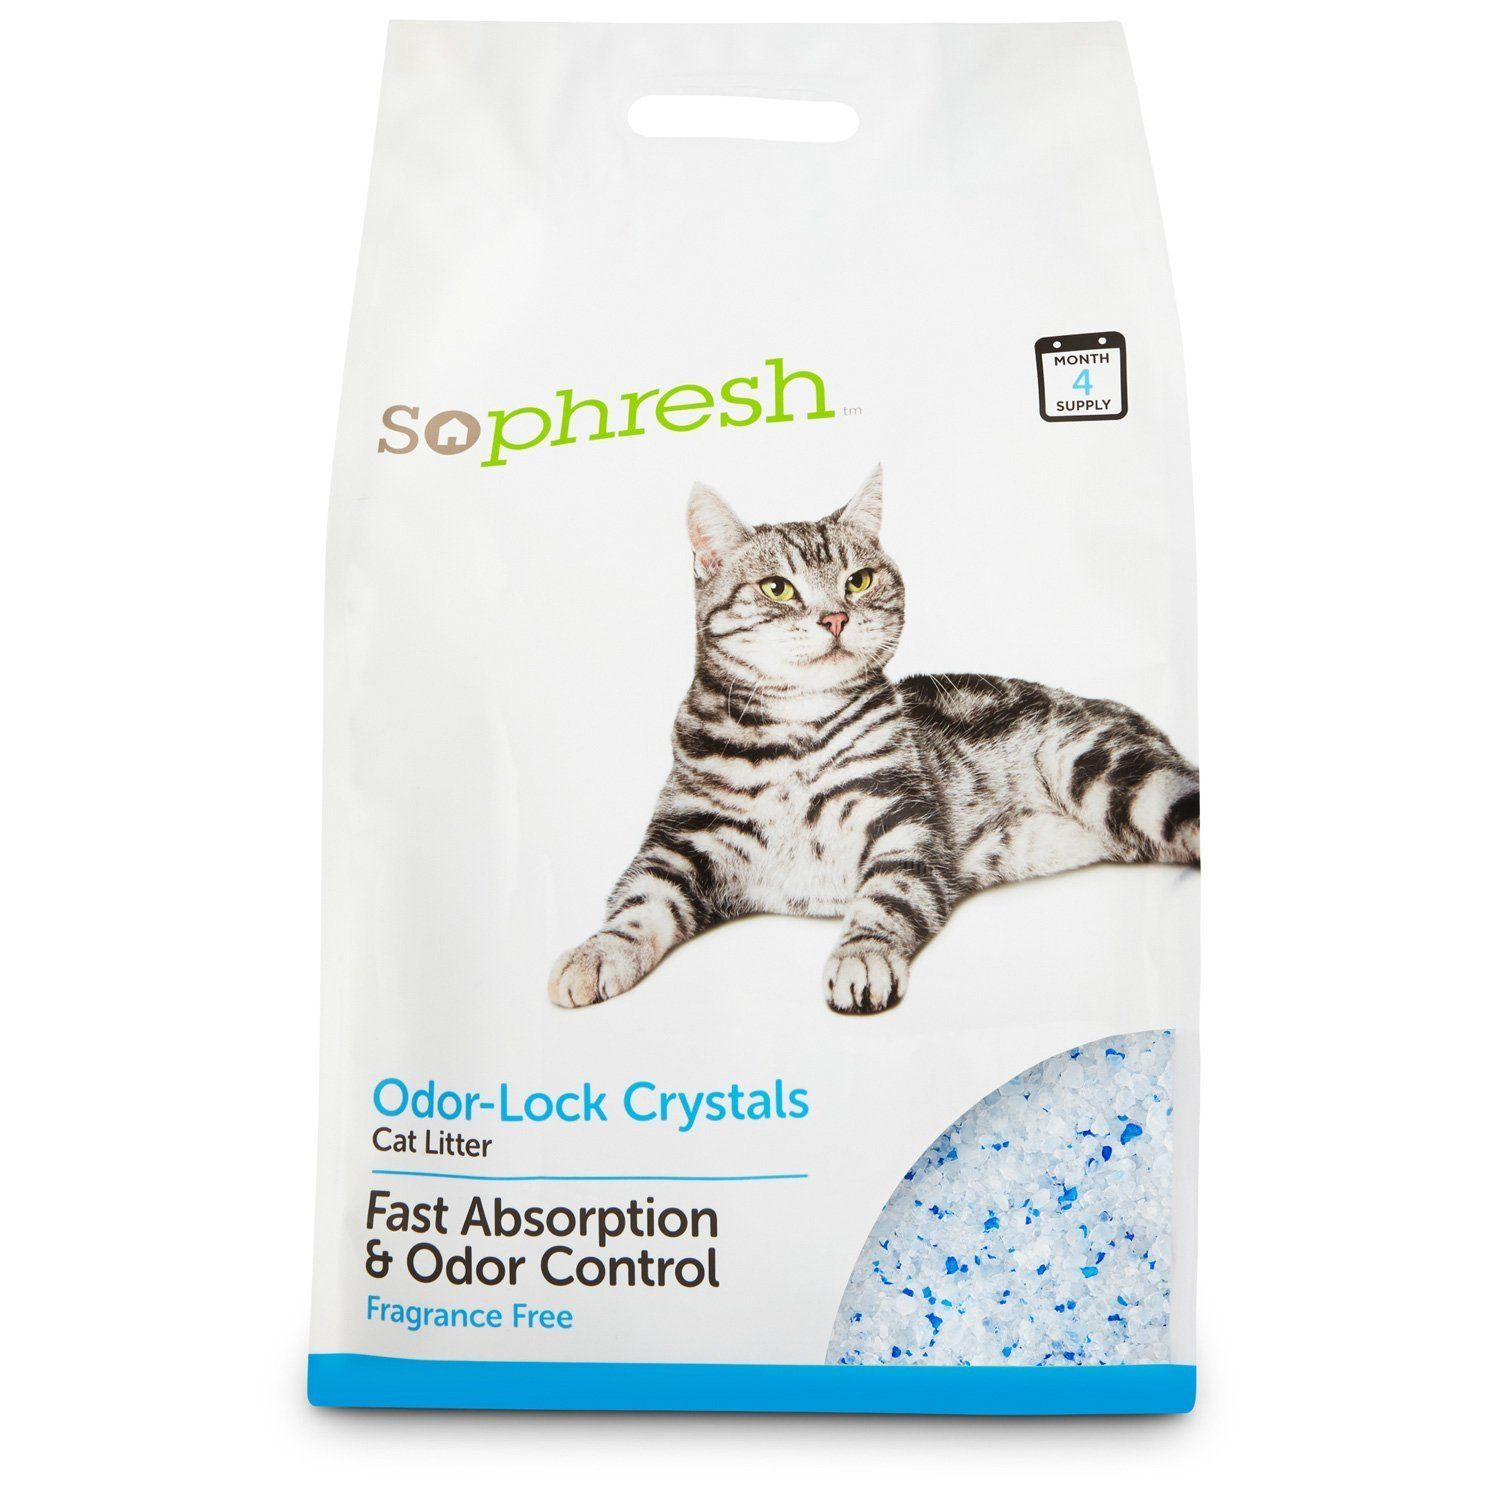 So Phresh Odor Lock Crystal Cat Litter 15 Lbs Hurry Check Out This Great Product Cat Litter Best Cat Litter Cat Litter Brands Cat Litter